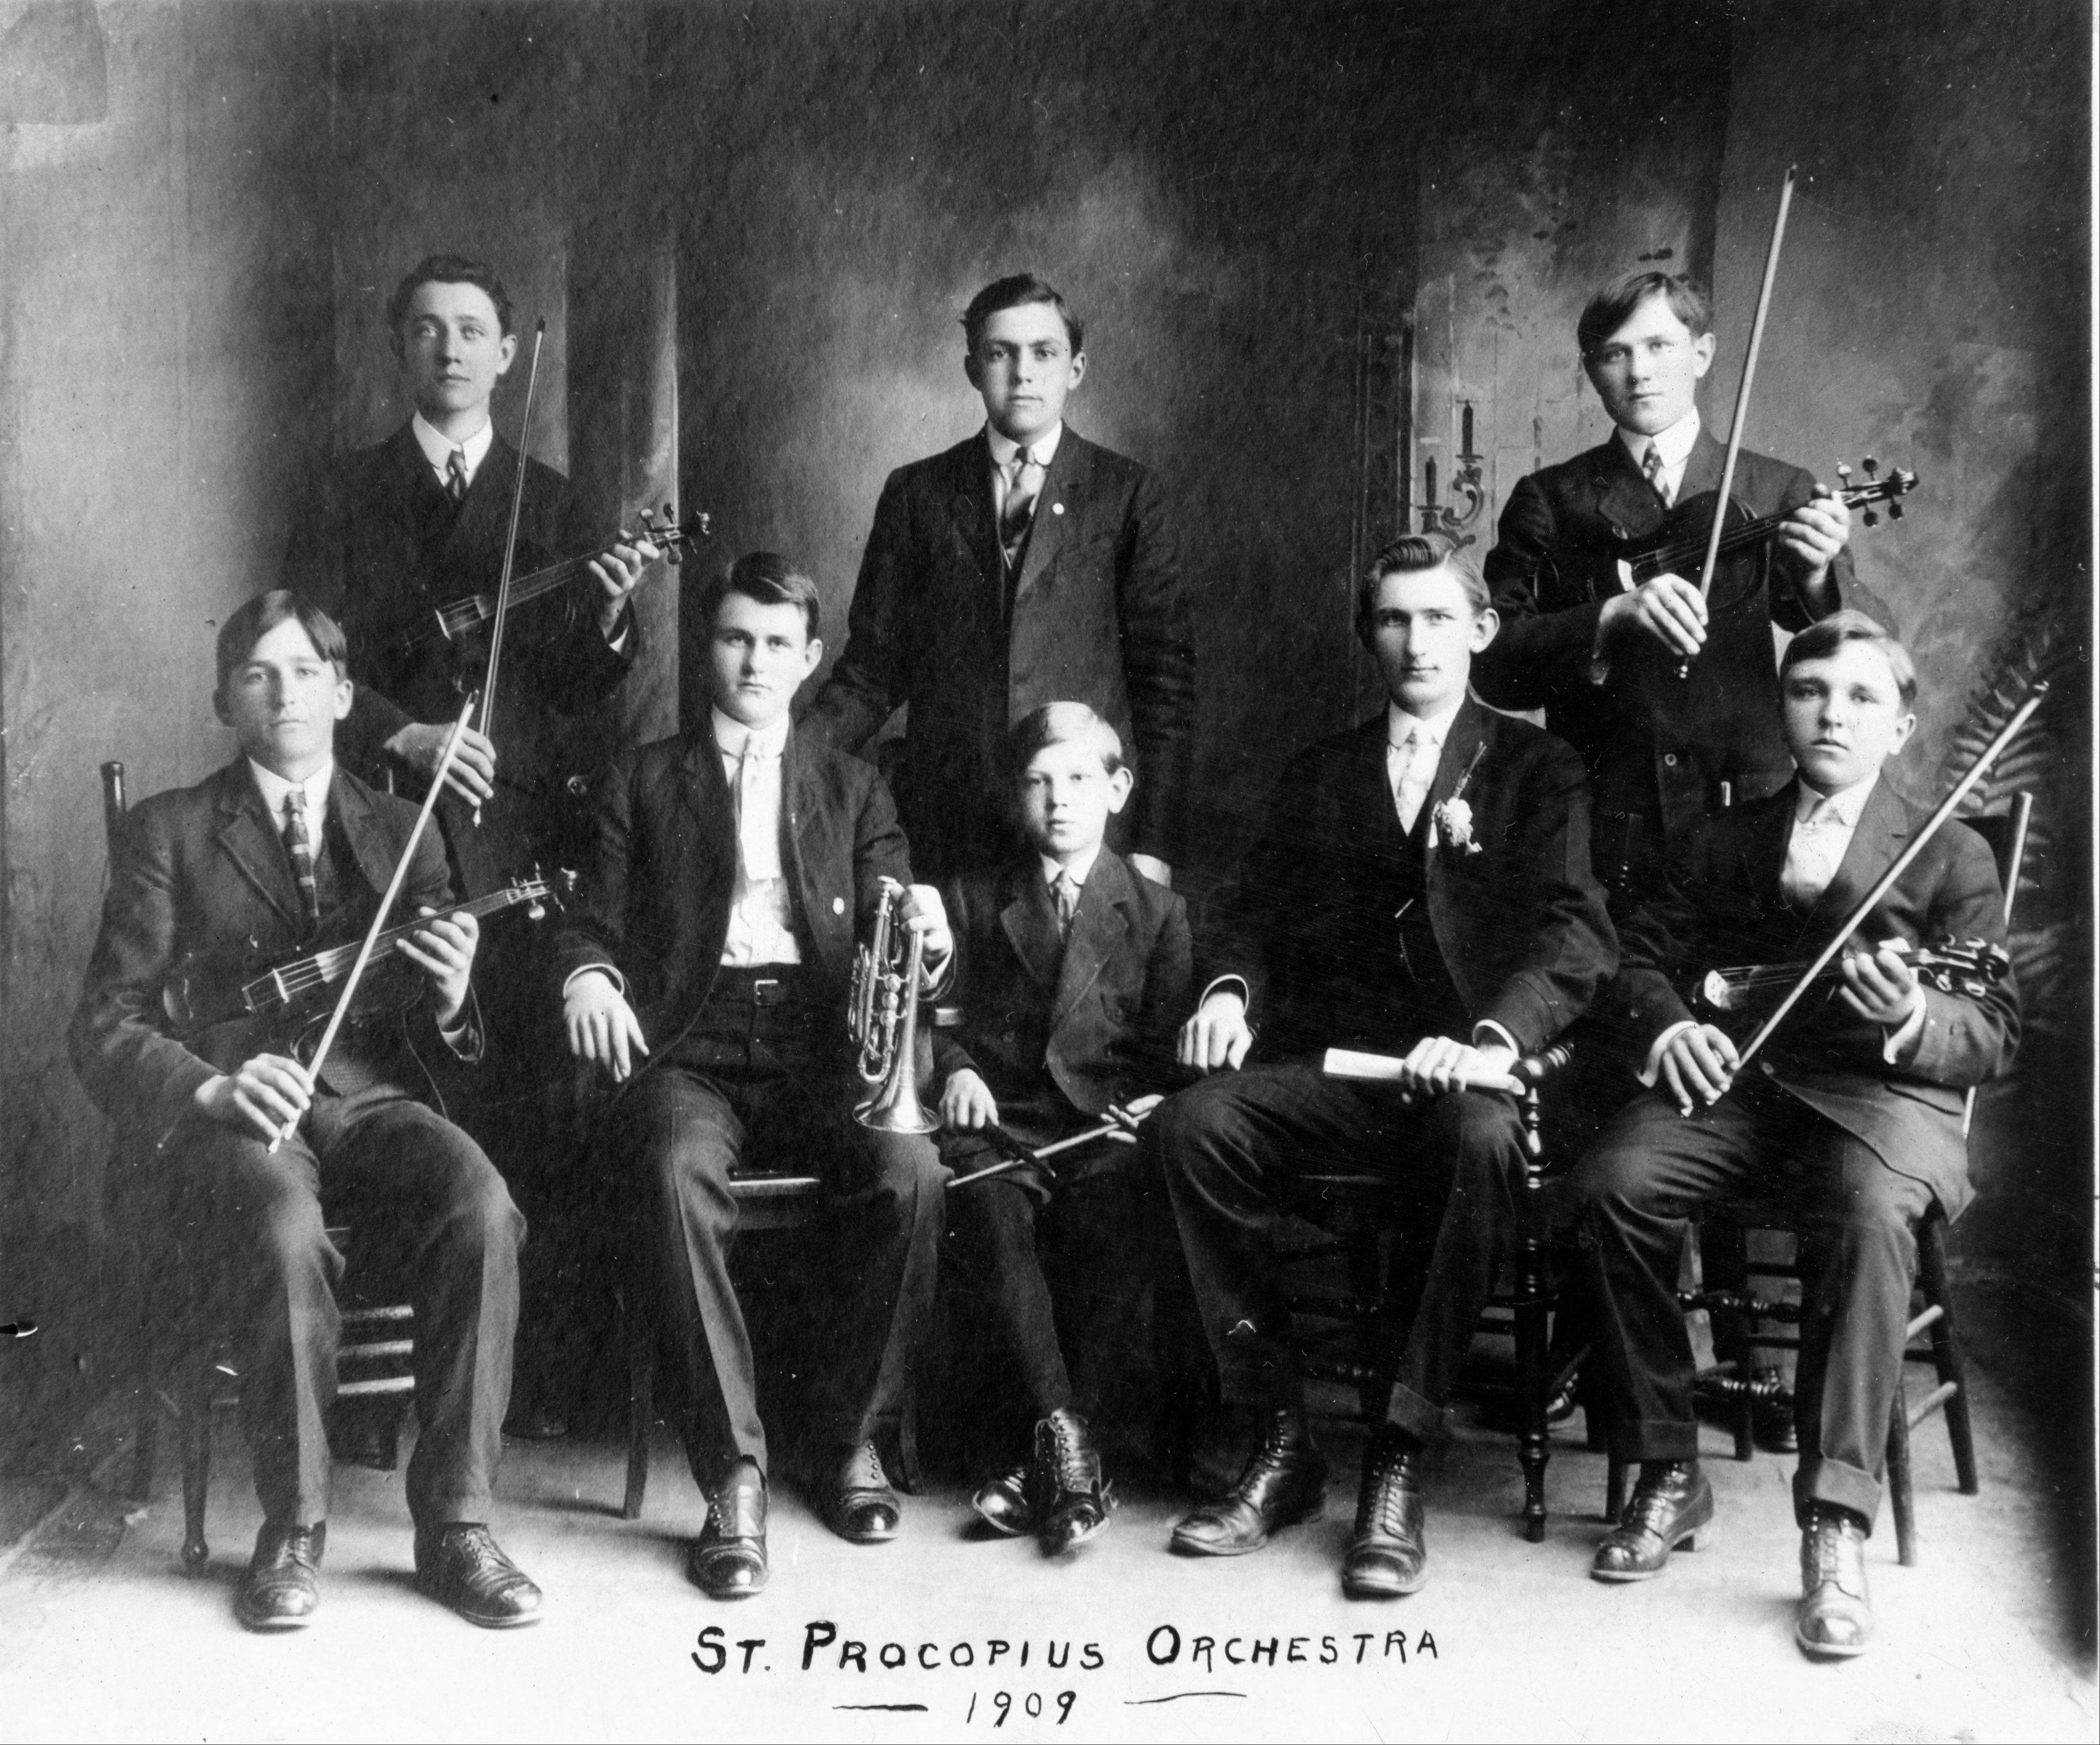 The 1909 St. Procopius Academy orchestra was a precursor to the fine arts programs offered today at Benet Academy.